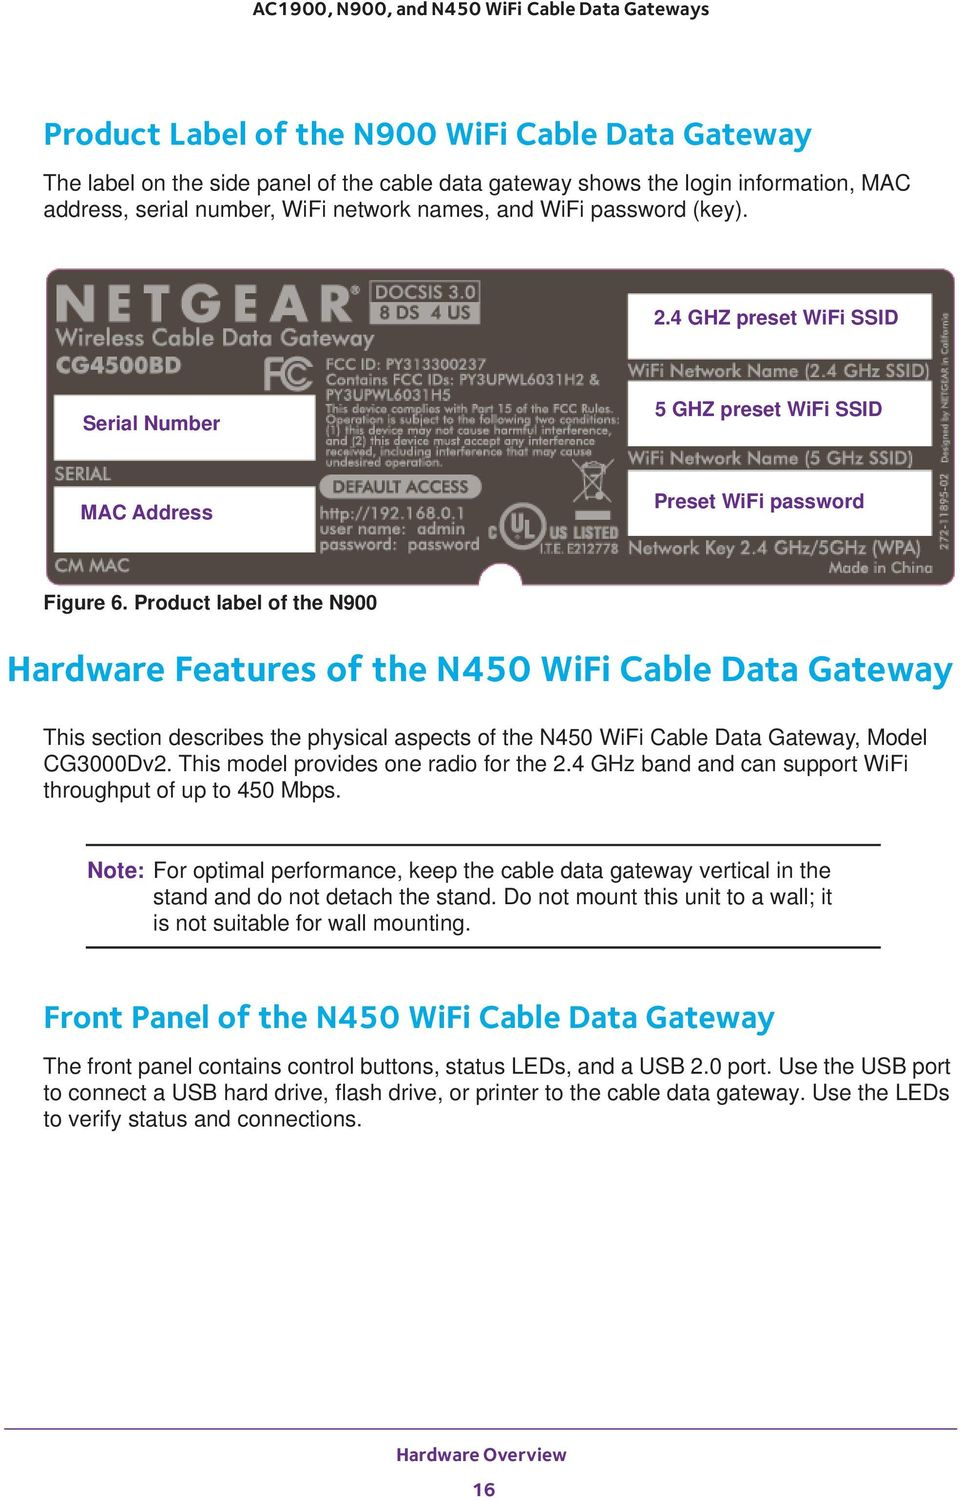 Product label of the N900 Hardware Features of the N450 WiFi Cable Data Gateway This section describes the physical aspects of the N450 WiFi Cable Data Gateway, Model CG3000Dv2.